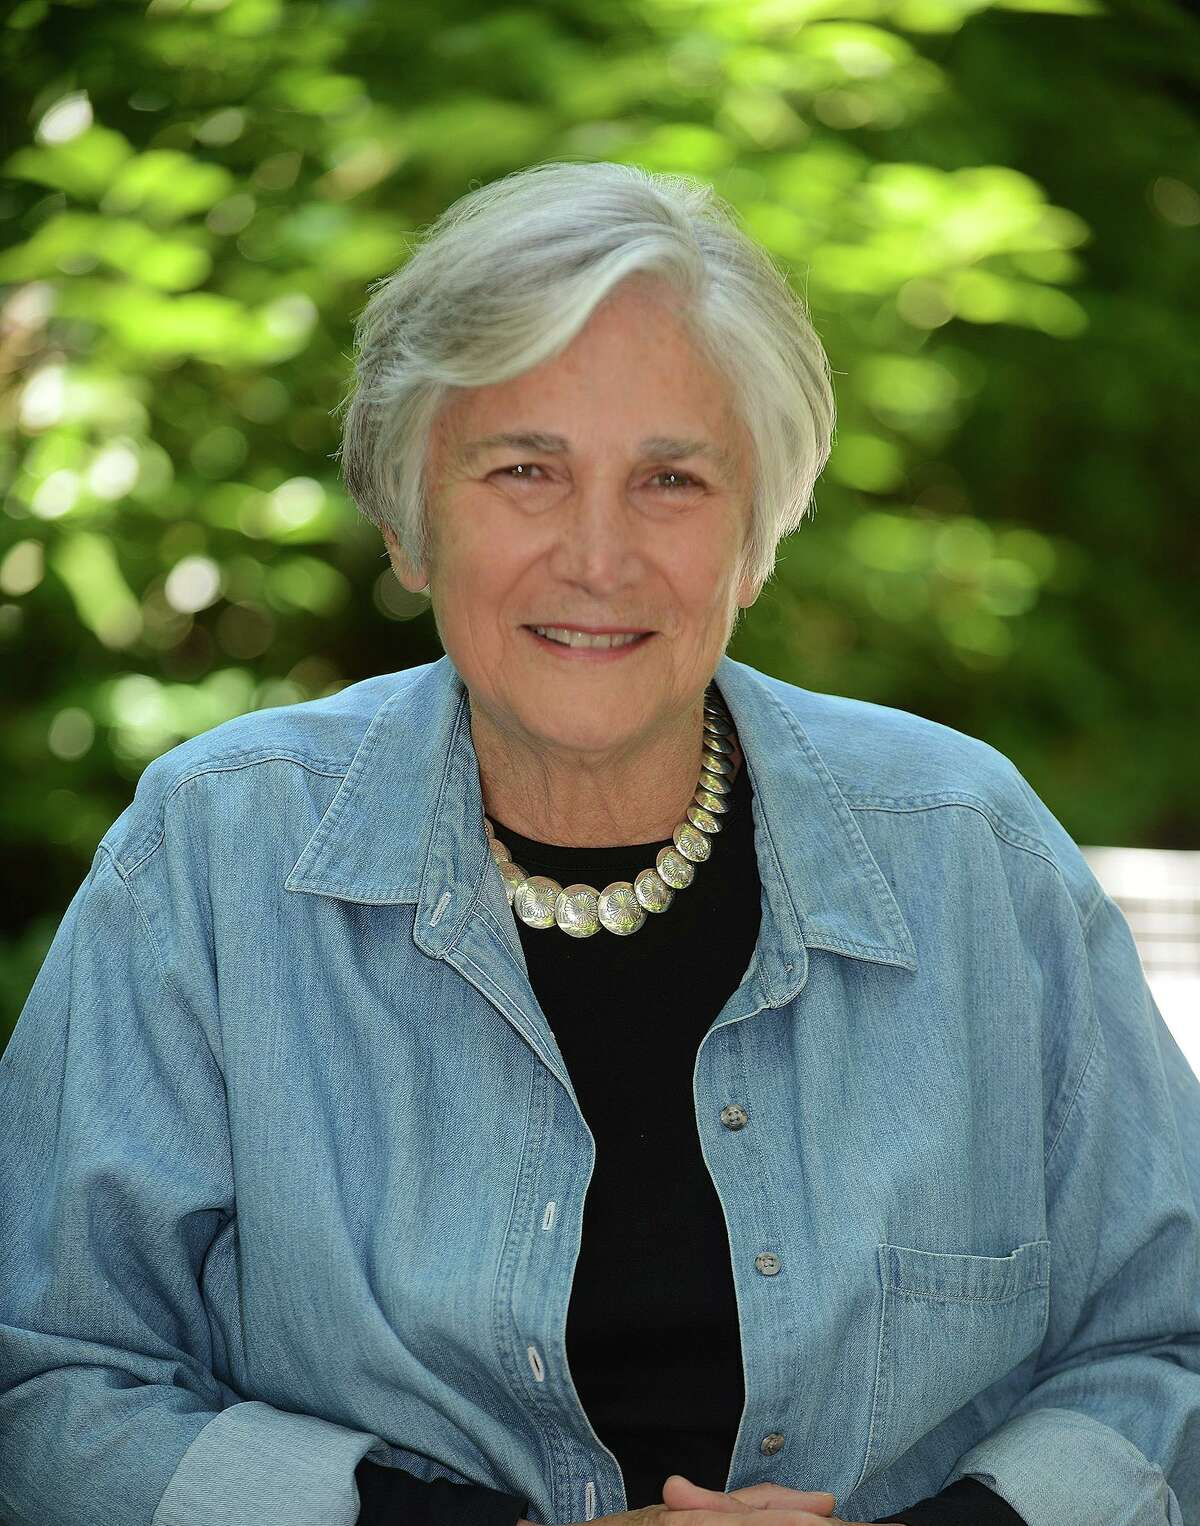 Diane Ravitch is former assistant secretary of education under President George H.W. Bush.